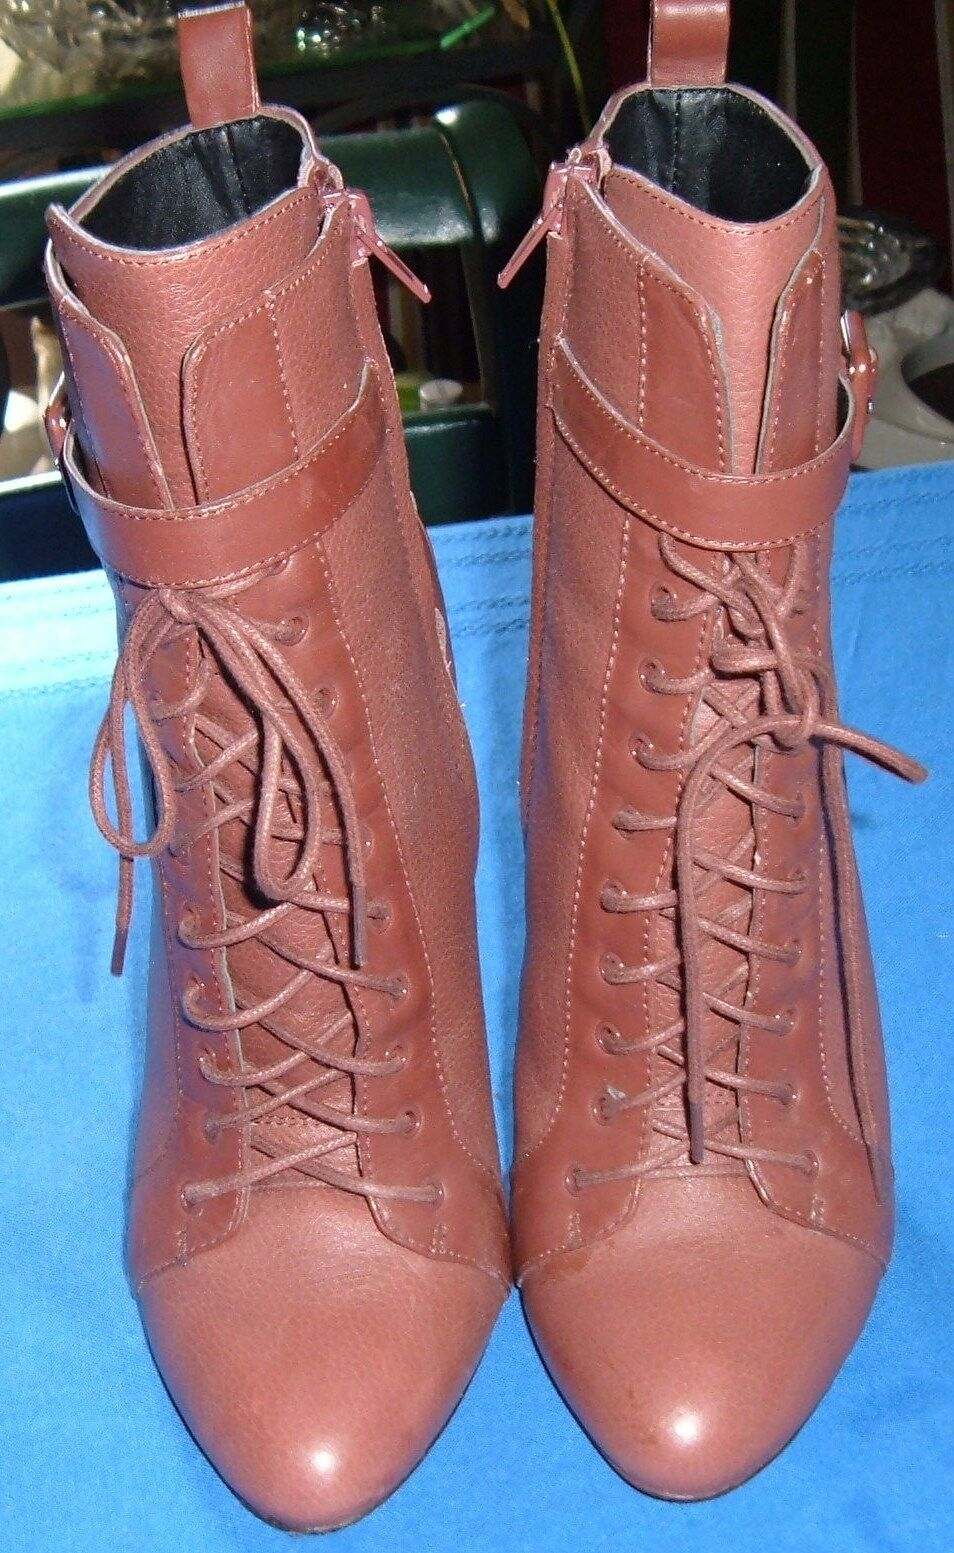 MAGNIFIQUE BOTTINES CHARLES DAVID 37 37 37 CUIR marrón  venta de ofertas